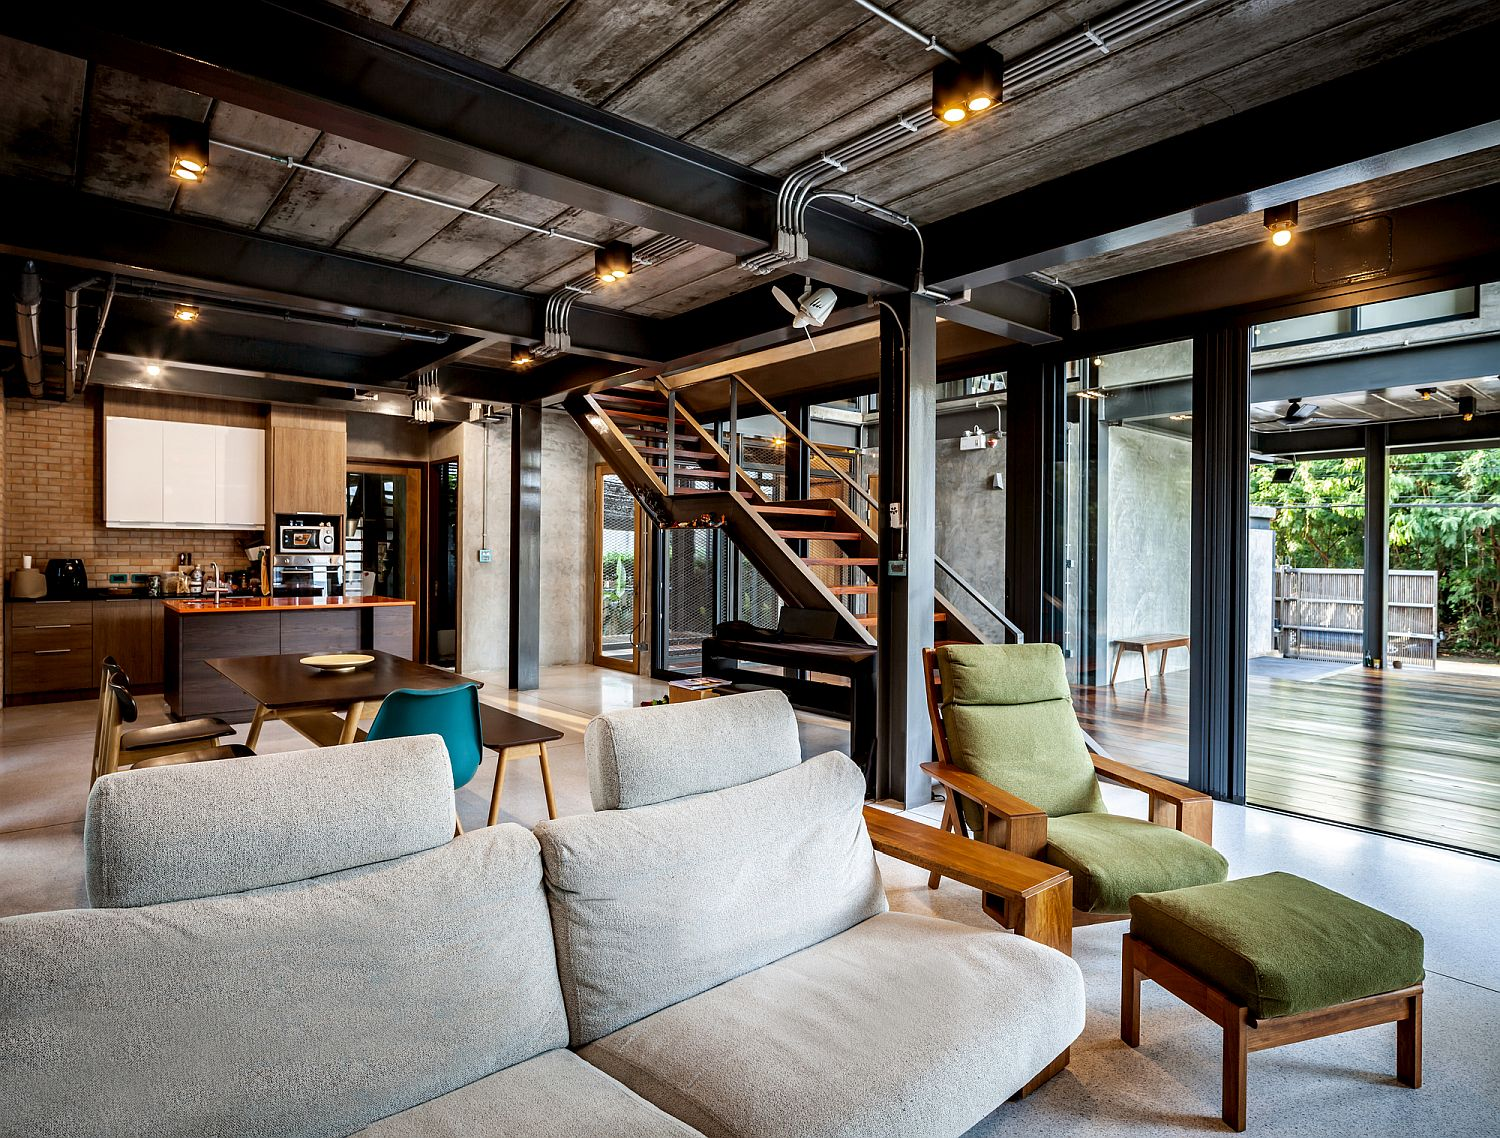 Open plan living area of the Bangkok home where nature outside takes center-stage